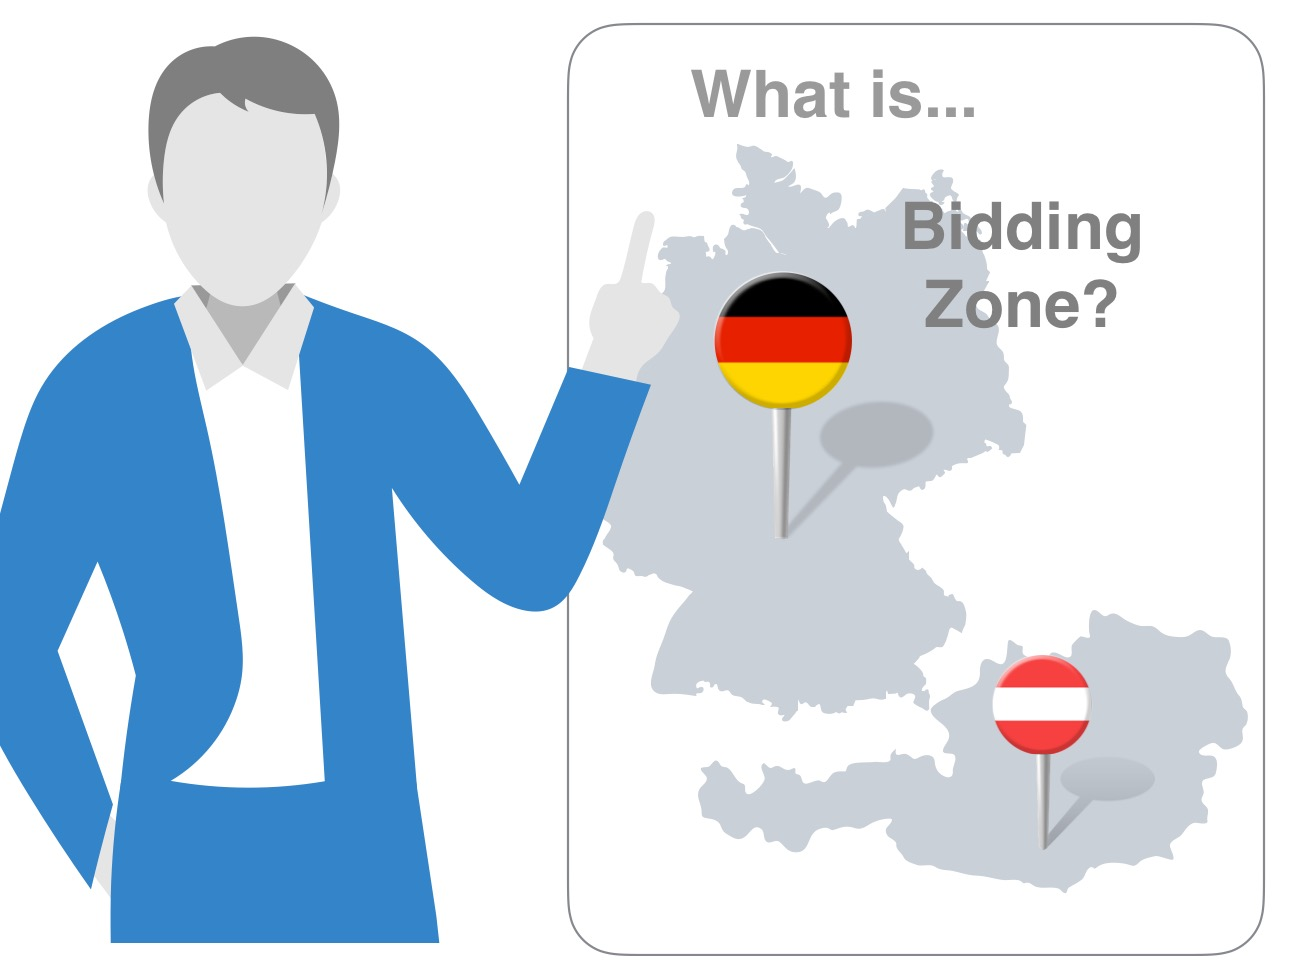 What is bidding zone